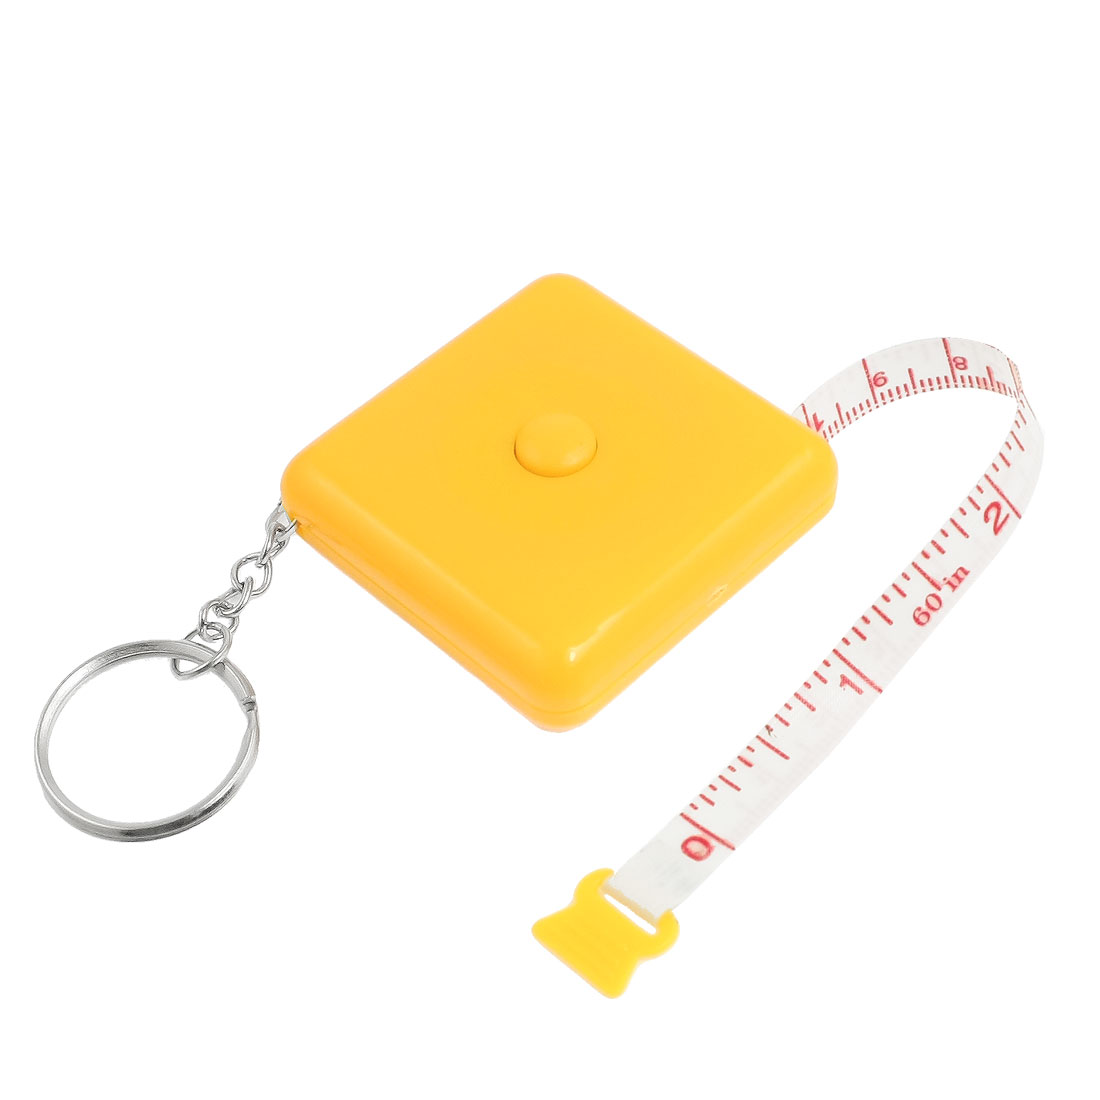 1.5M Yellow Square Plastic Shell Retractable Measure Tape w Keychain